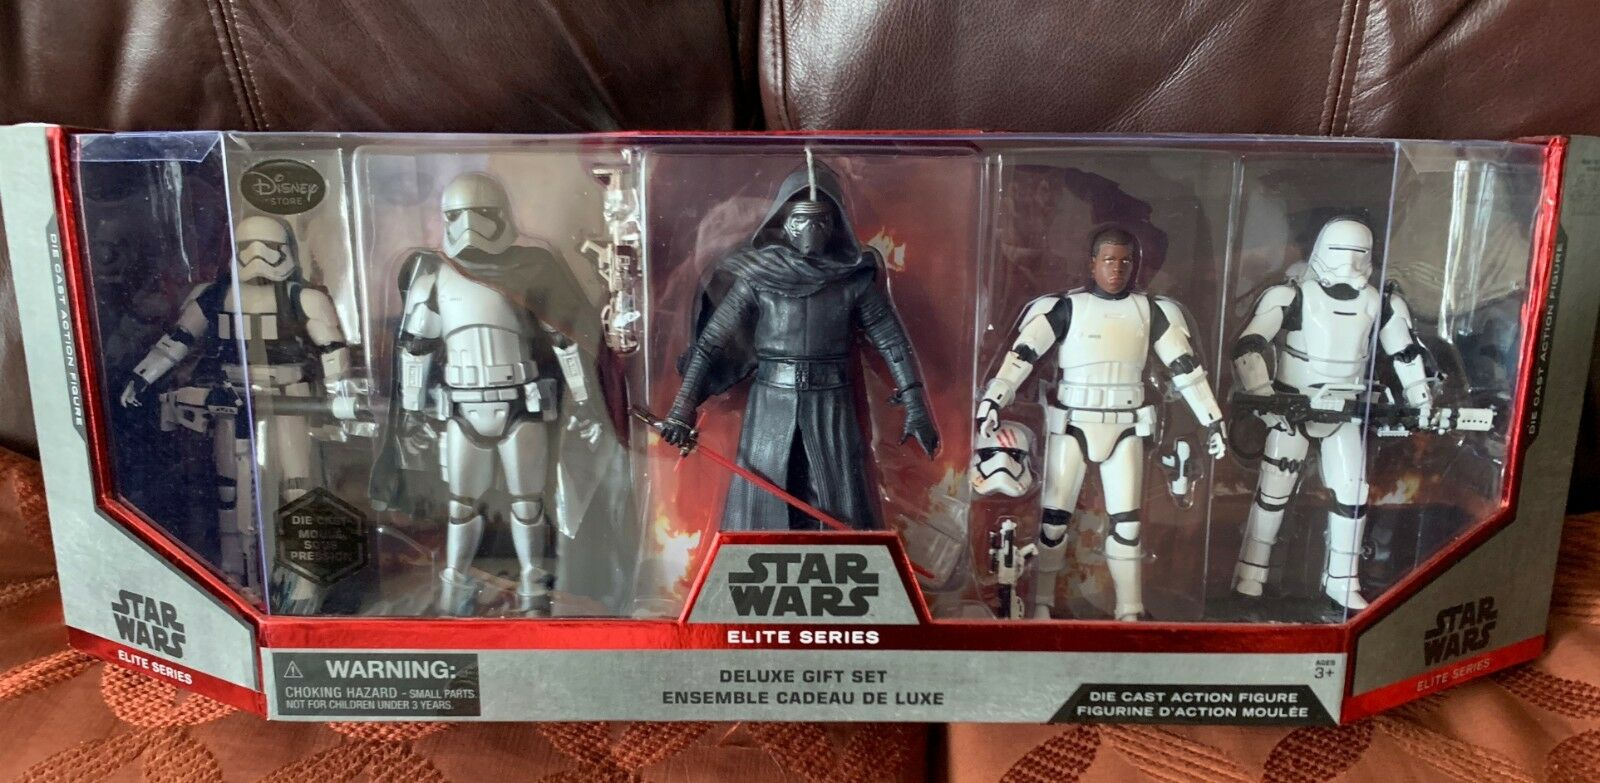 STAR Wars incl Capt Phasma FINN FIAMMA Trooper kylo ACTION FIGURE ANCORA IN SCATOLA